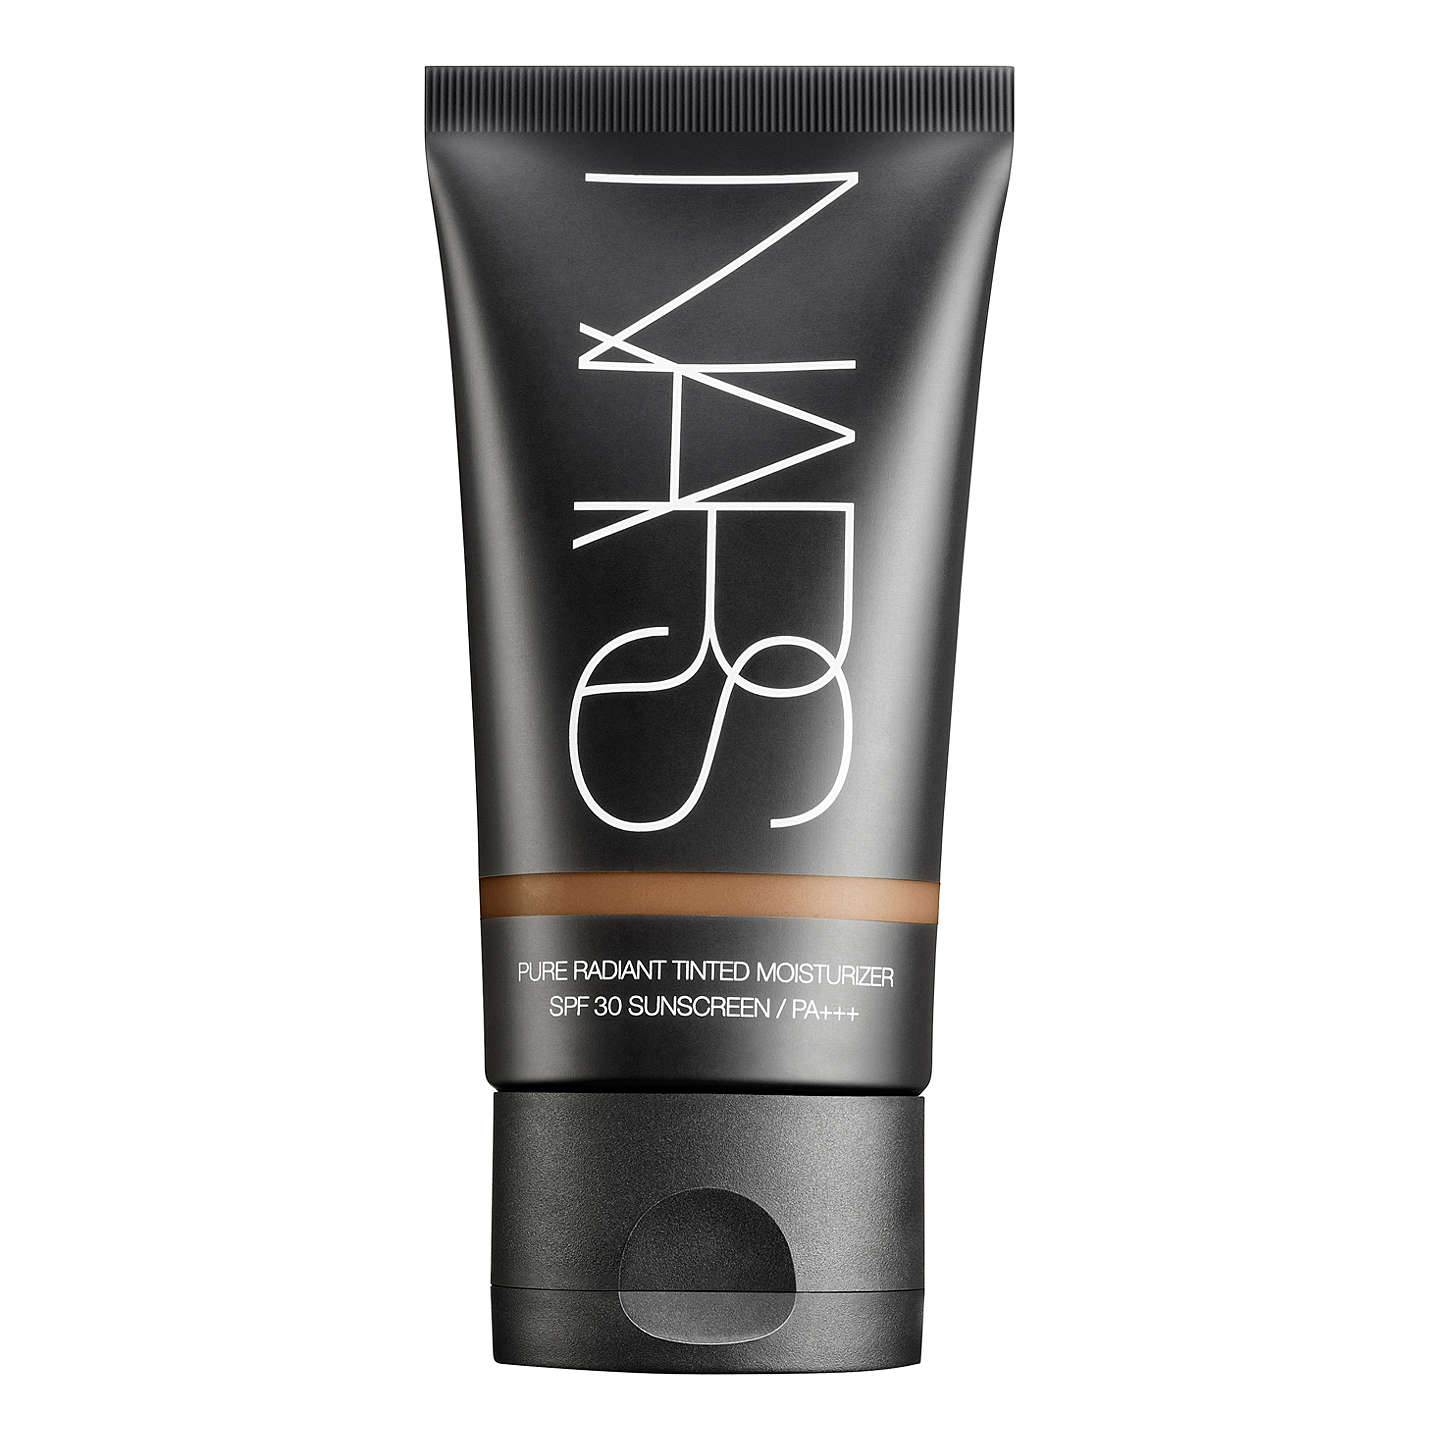 BuyNARS Pure Radiant Tinted Moisturiser SPF 30/PA+++, Martinique Online at johnlewis.com